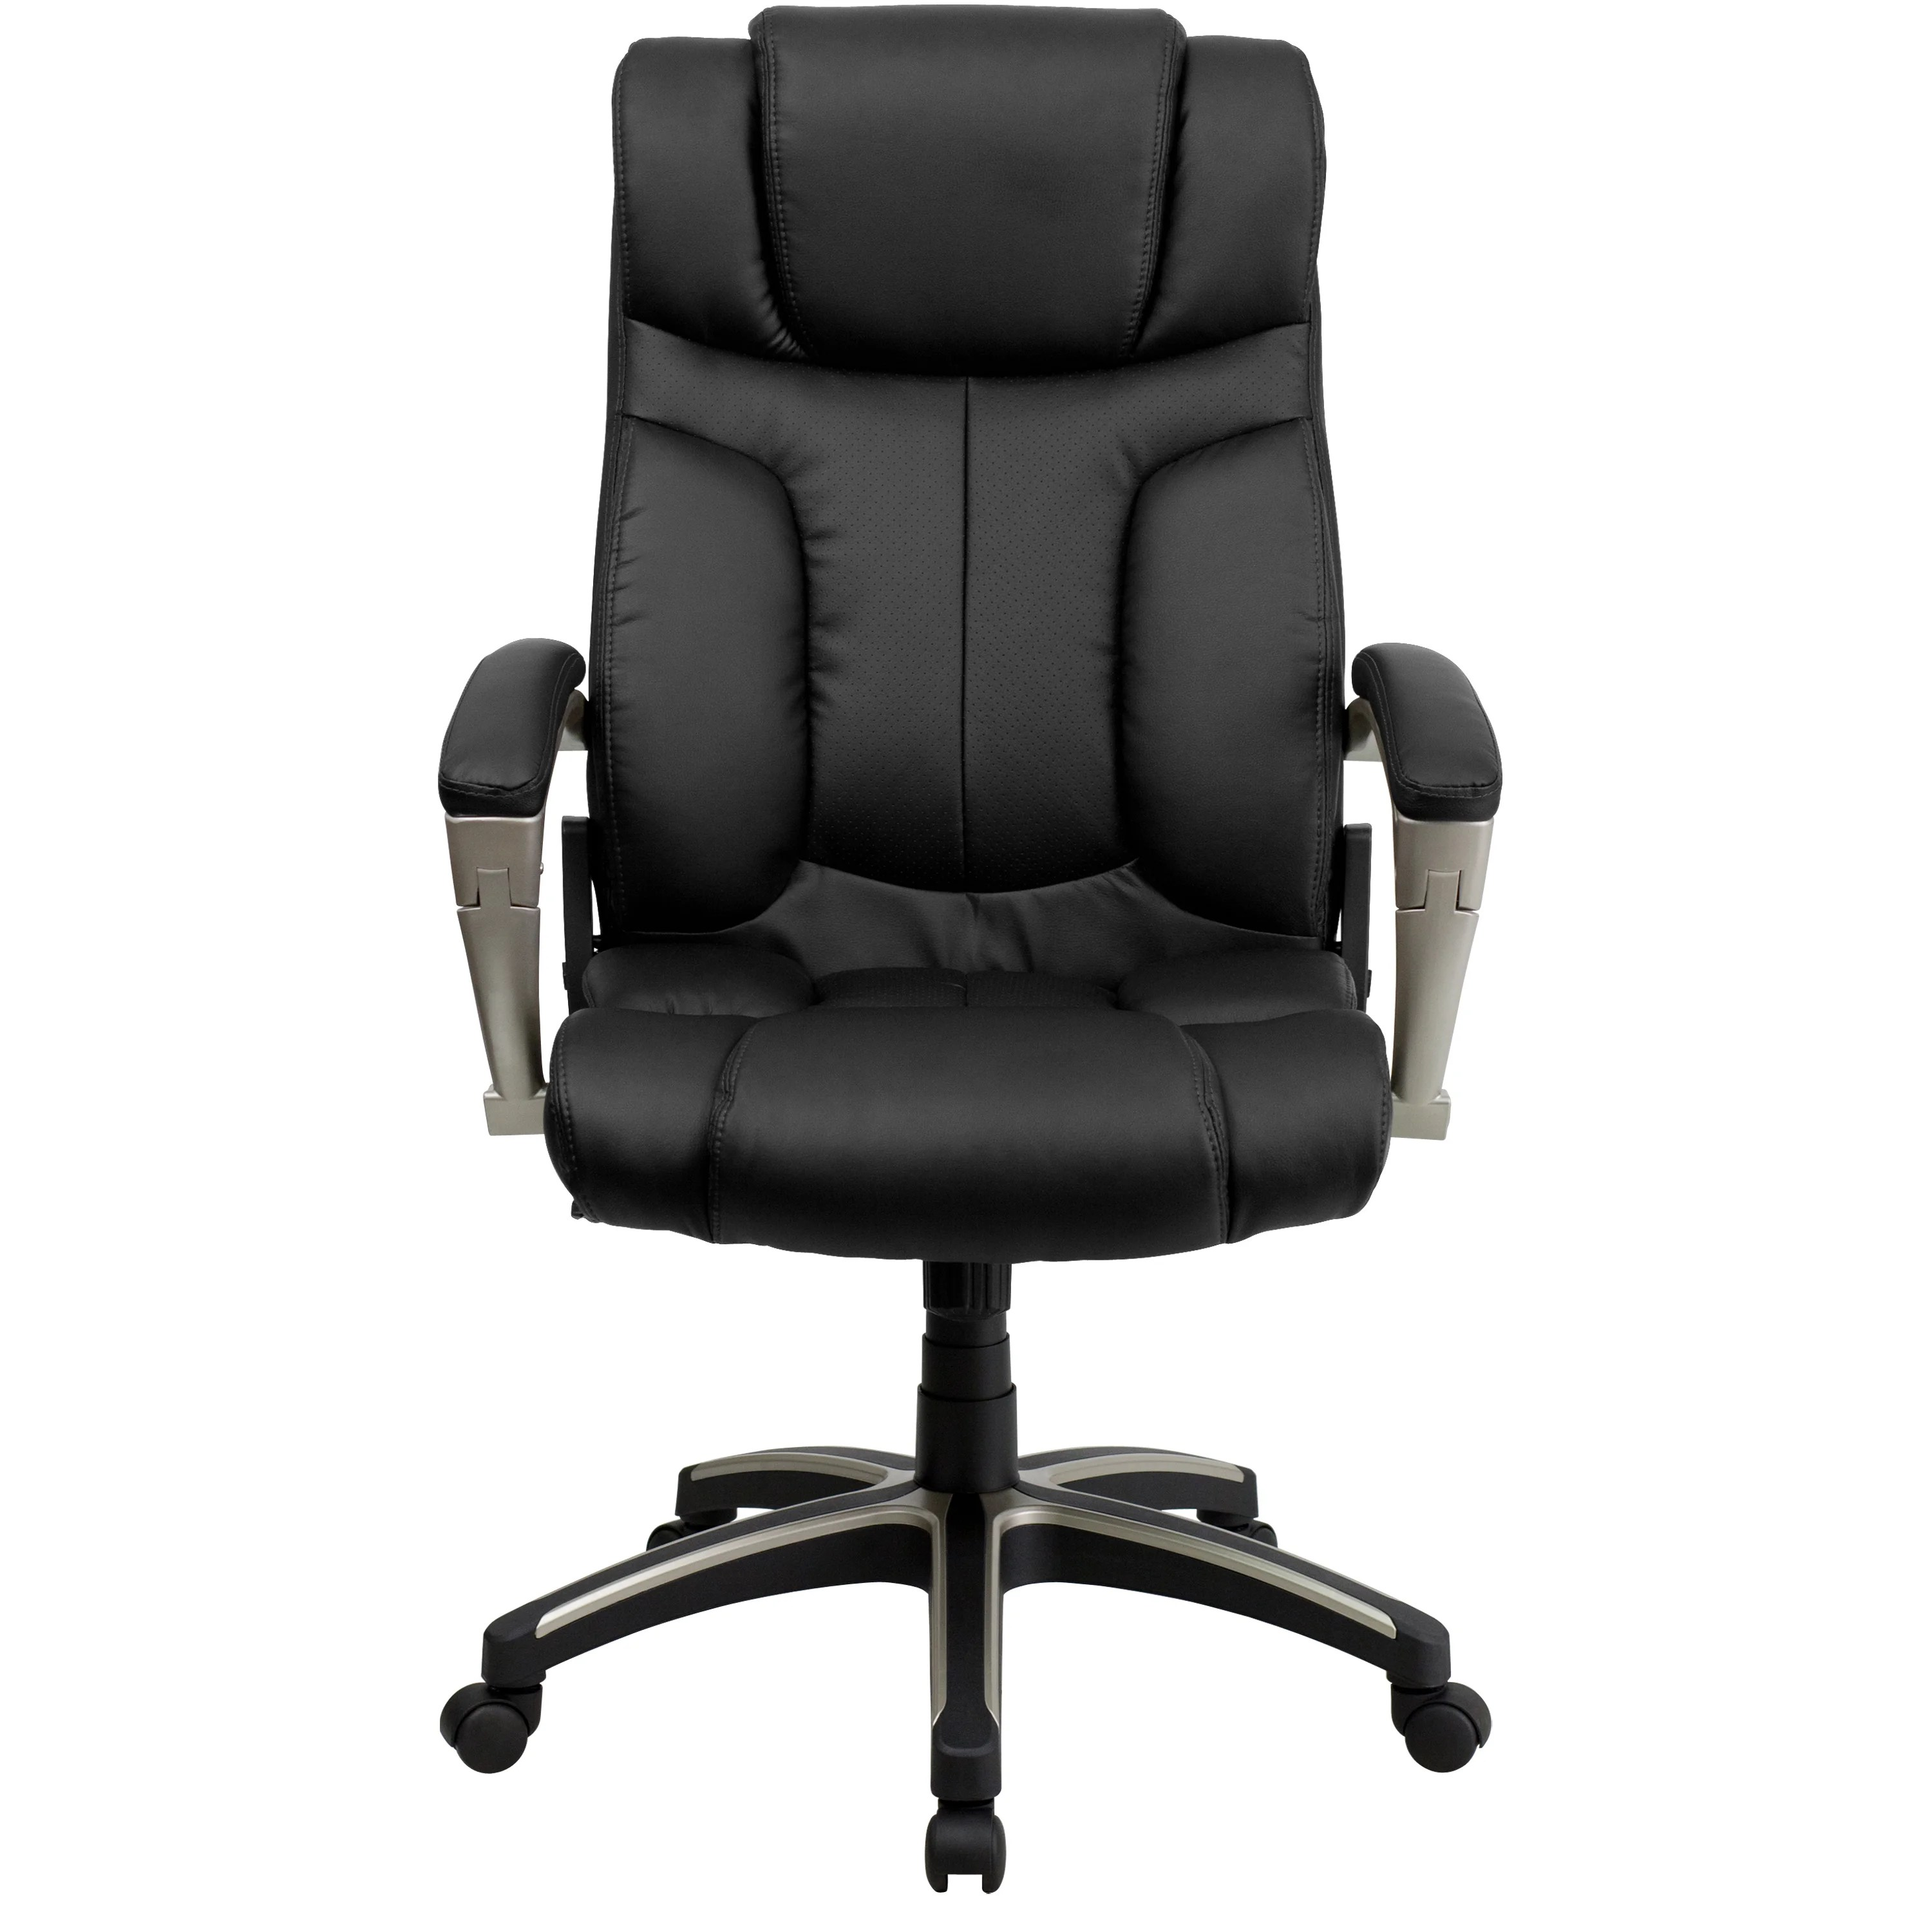 Foldable Office Chair Foldable Black Leather Executive Adjustable Swivel Office Chair